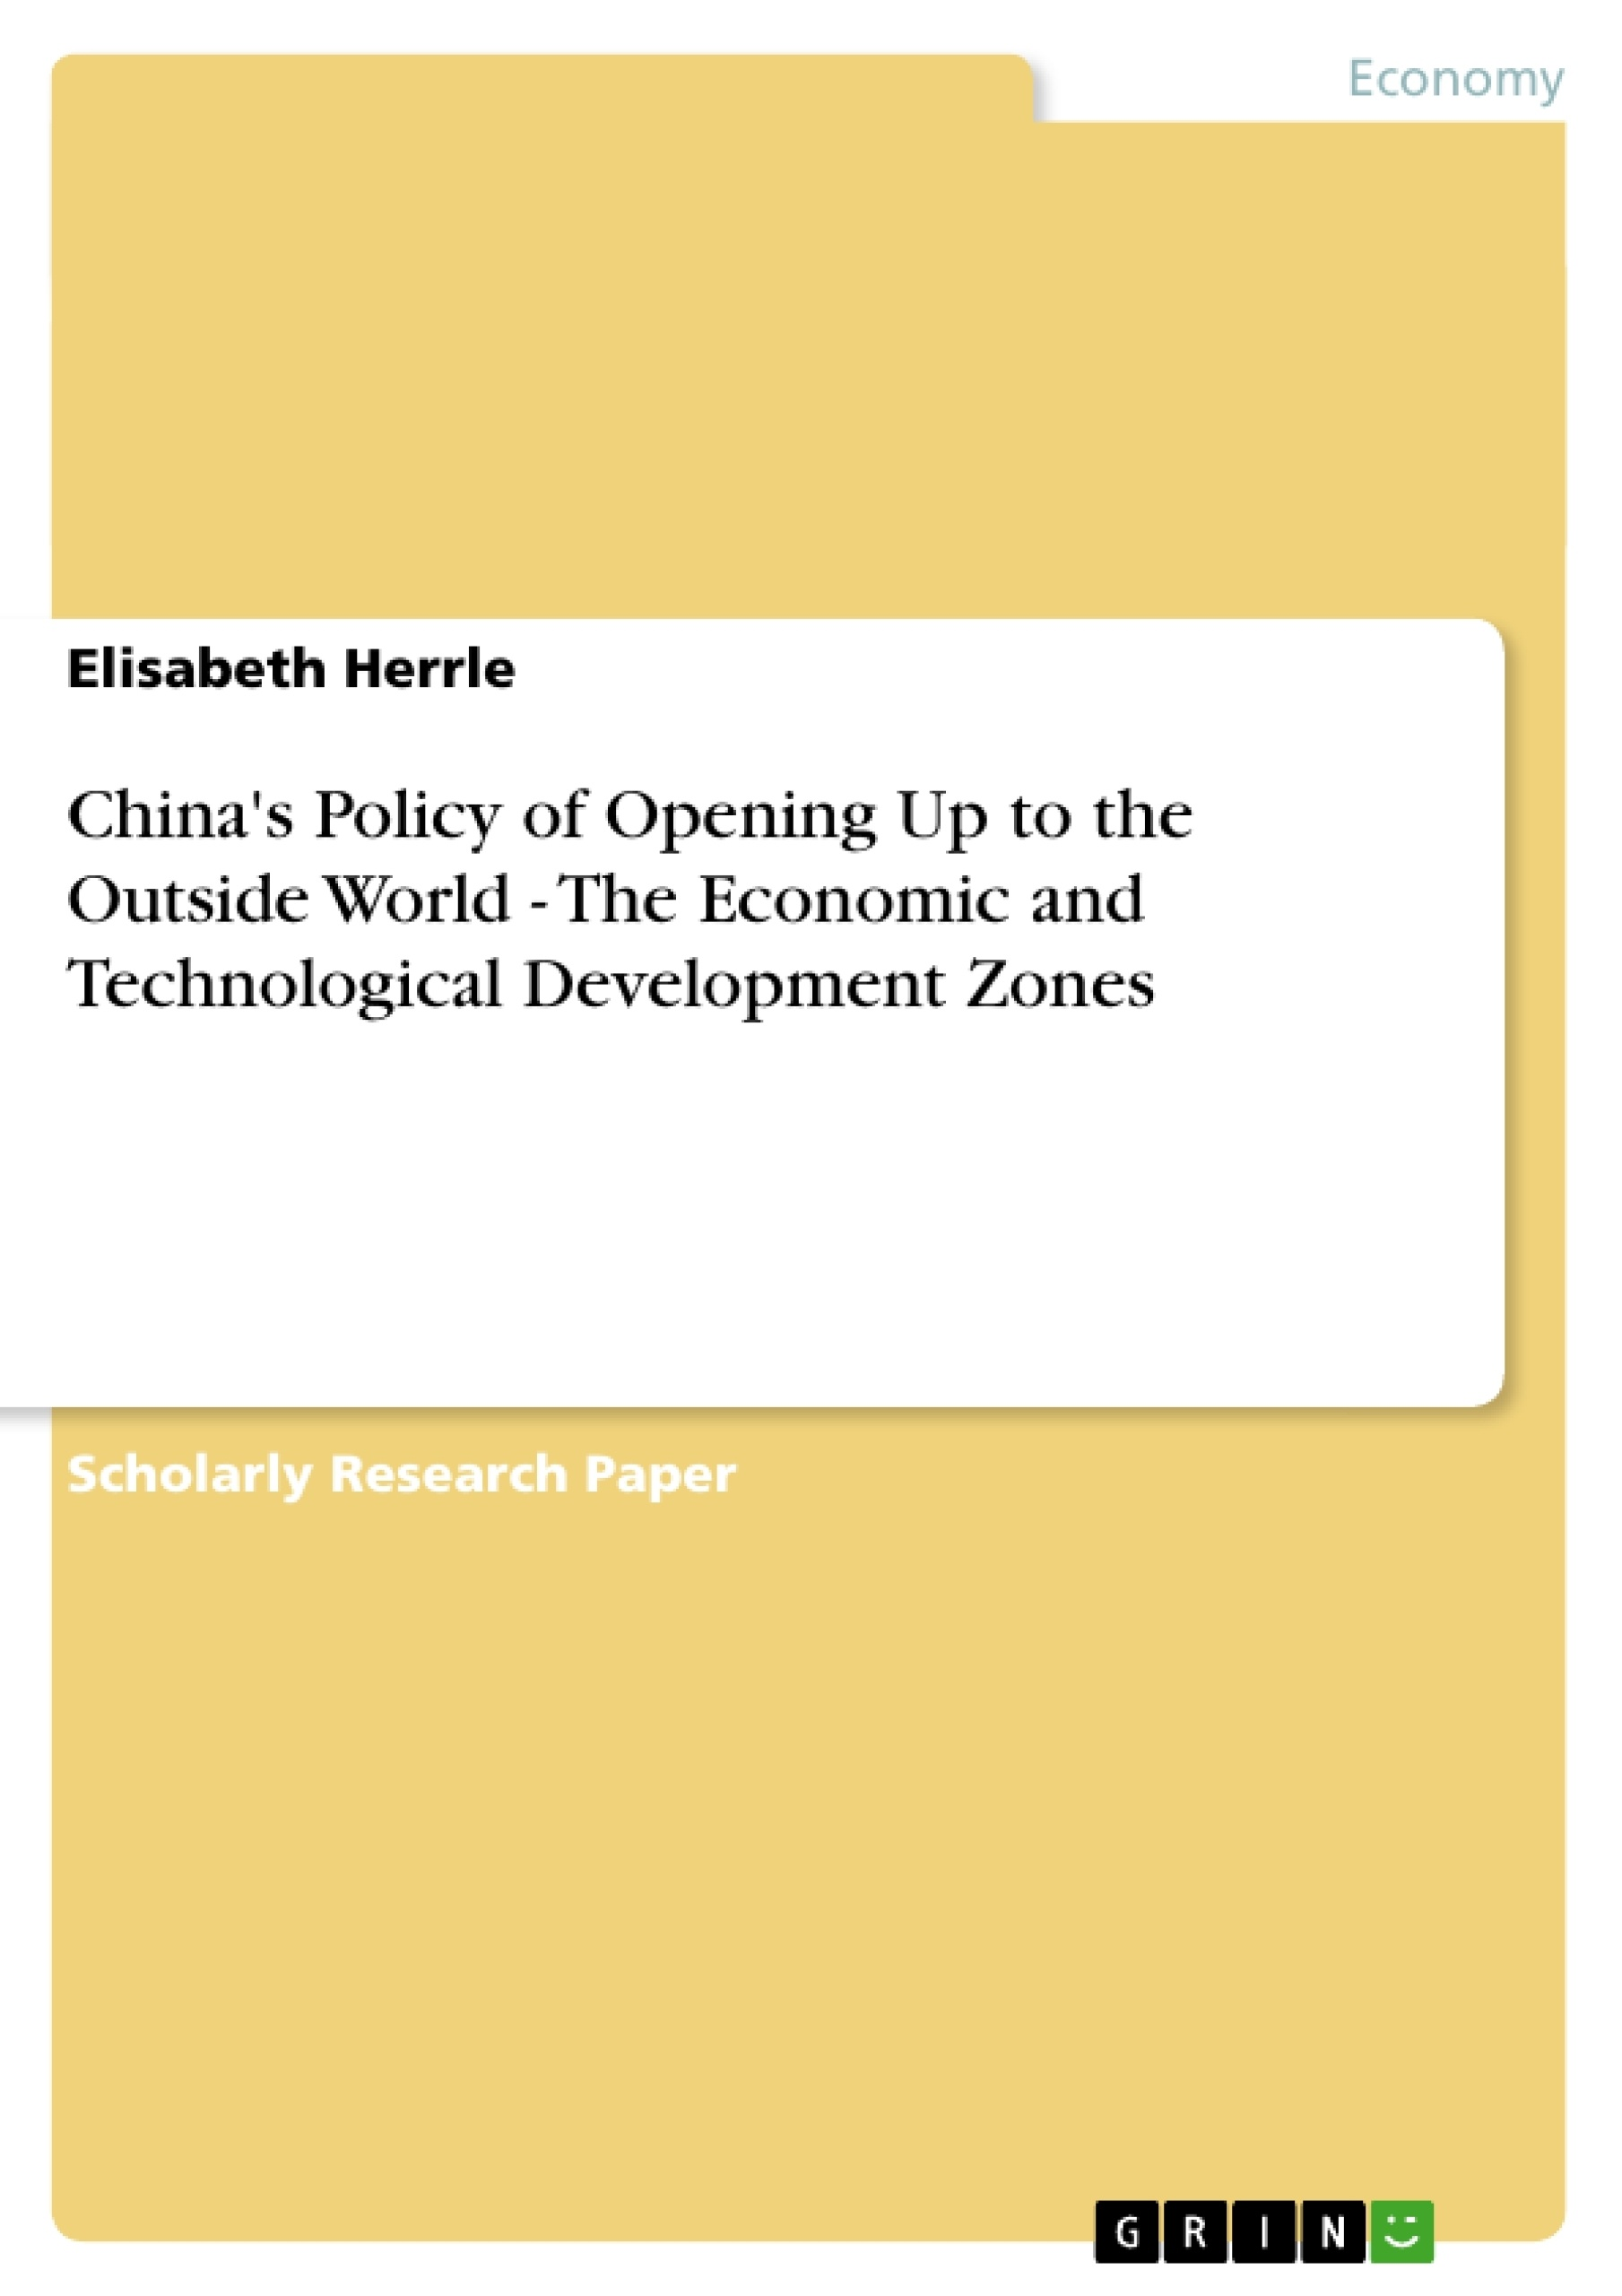 hegemonic stability thesis Hegemonic stability theory: the rise and fall of the us-leadership in world economic relations - julia schubert - term paper - politics - international politics - general and theories - publish your bachelor's or master's thesis, dissertation, term paper or essay.